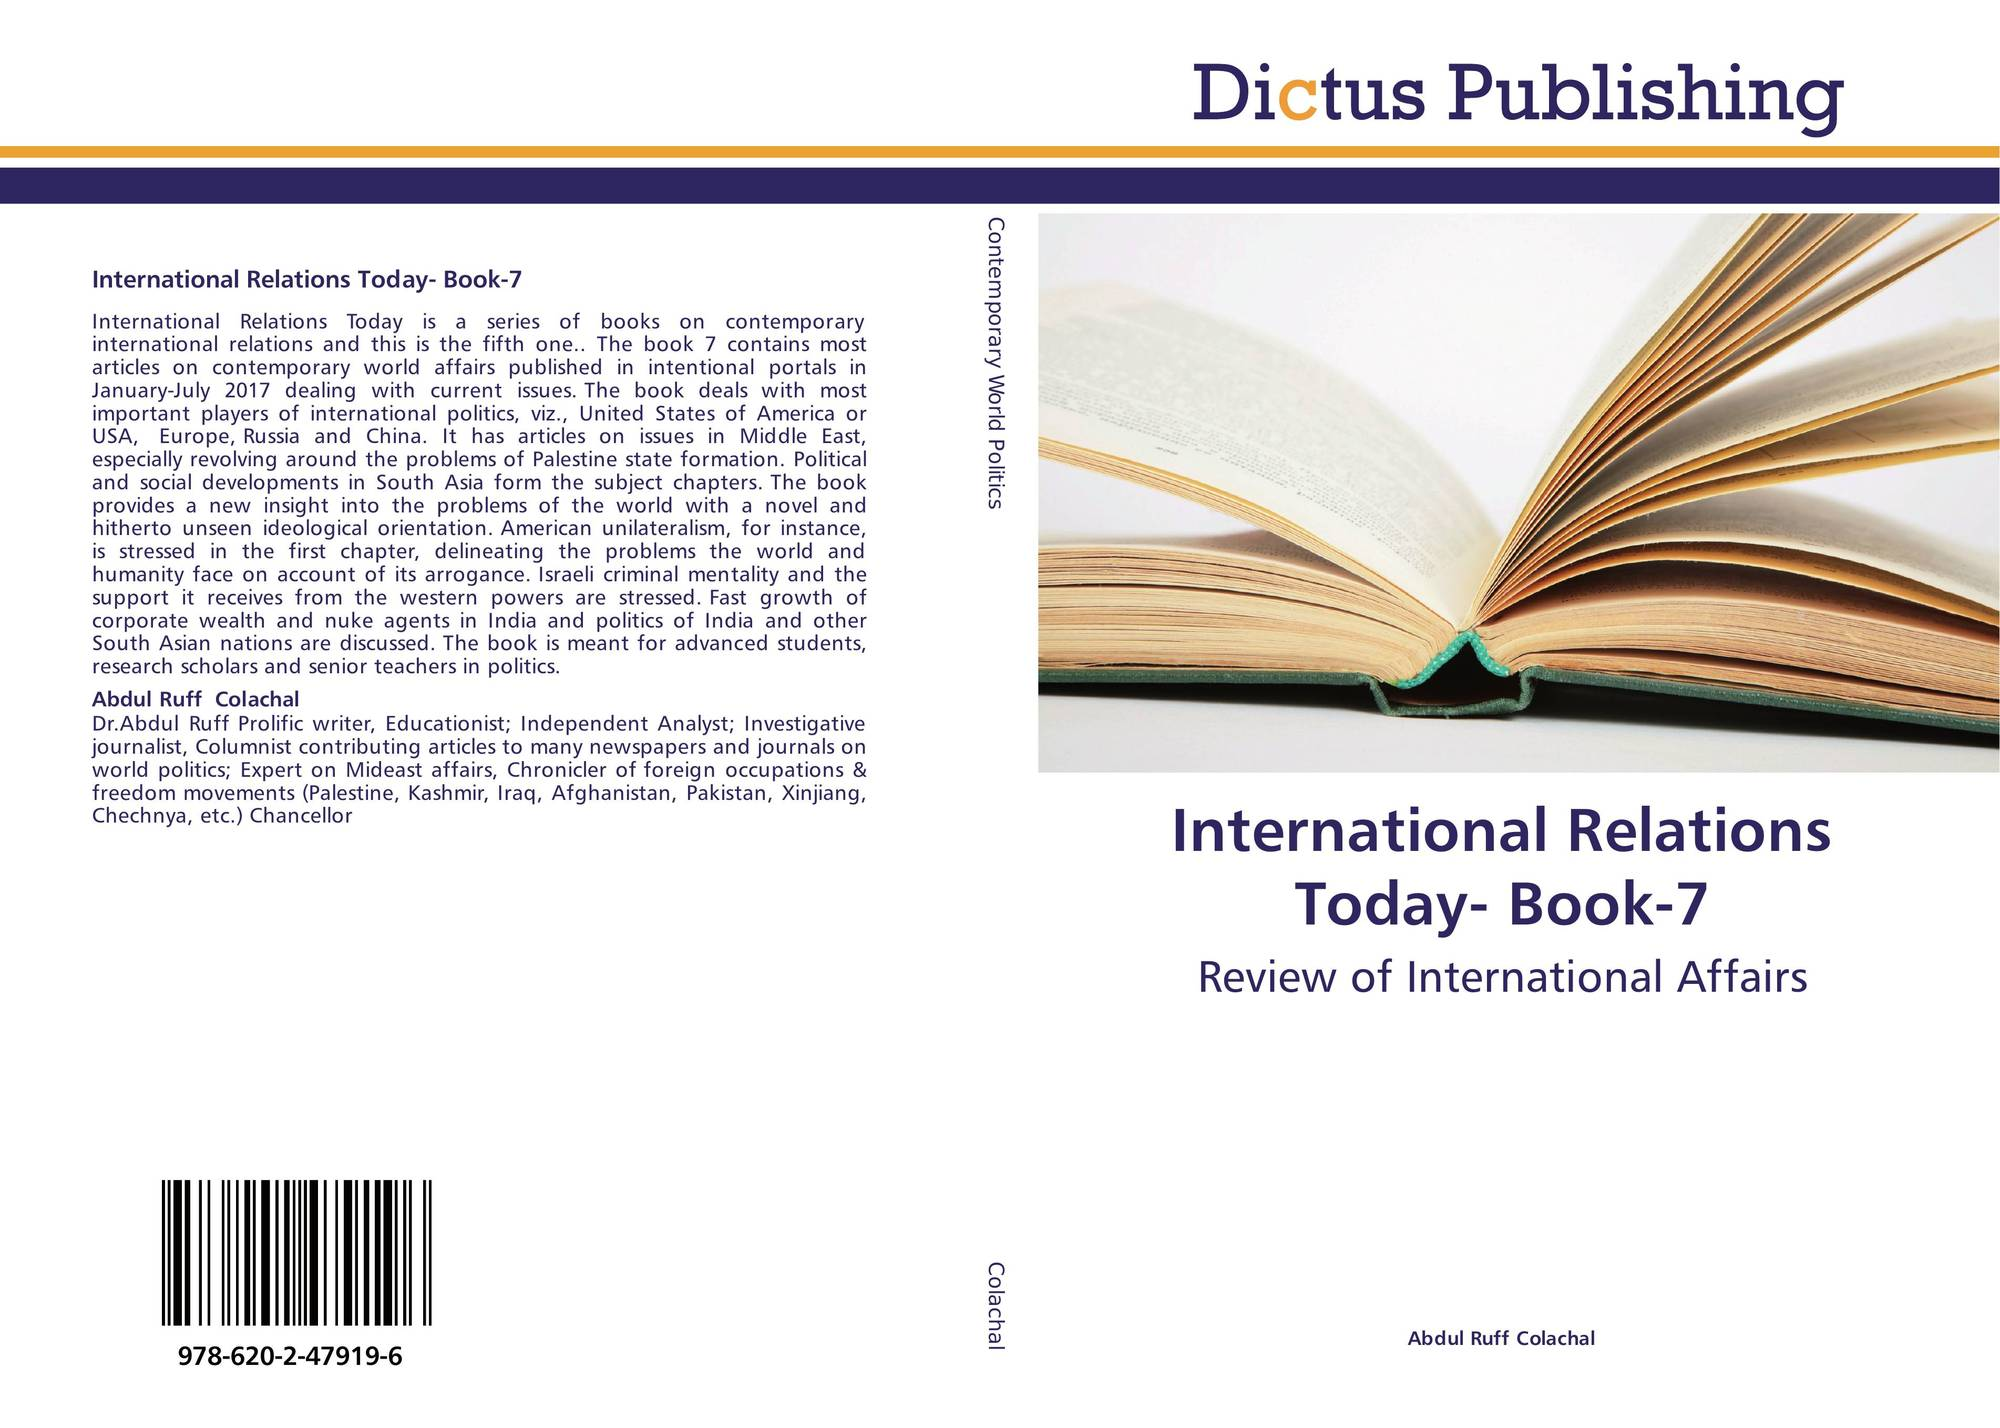 International Relations Today- Book-7, 978-620-2-47919-6, 6202479191